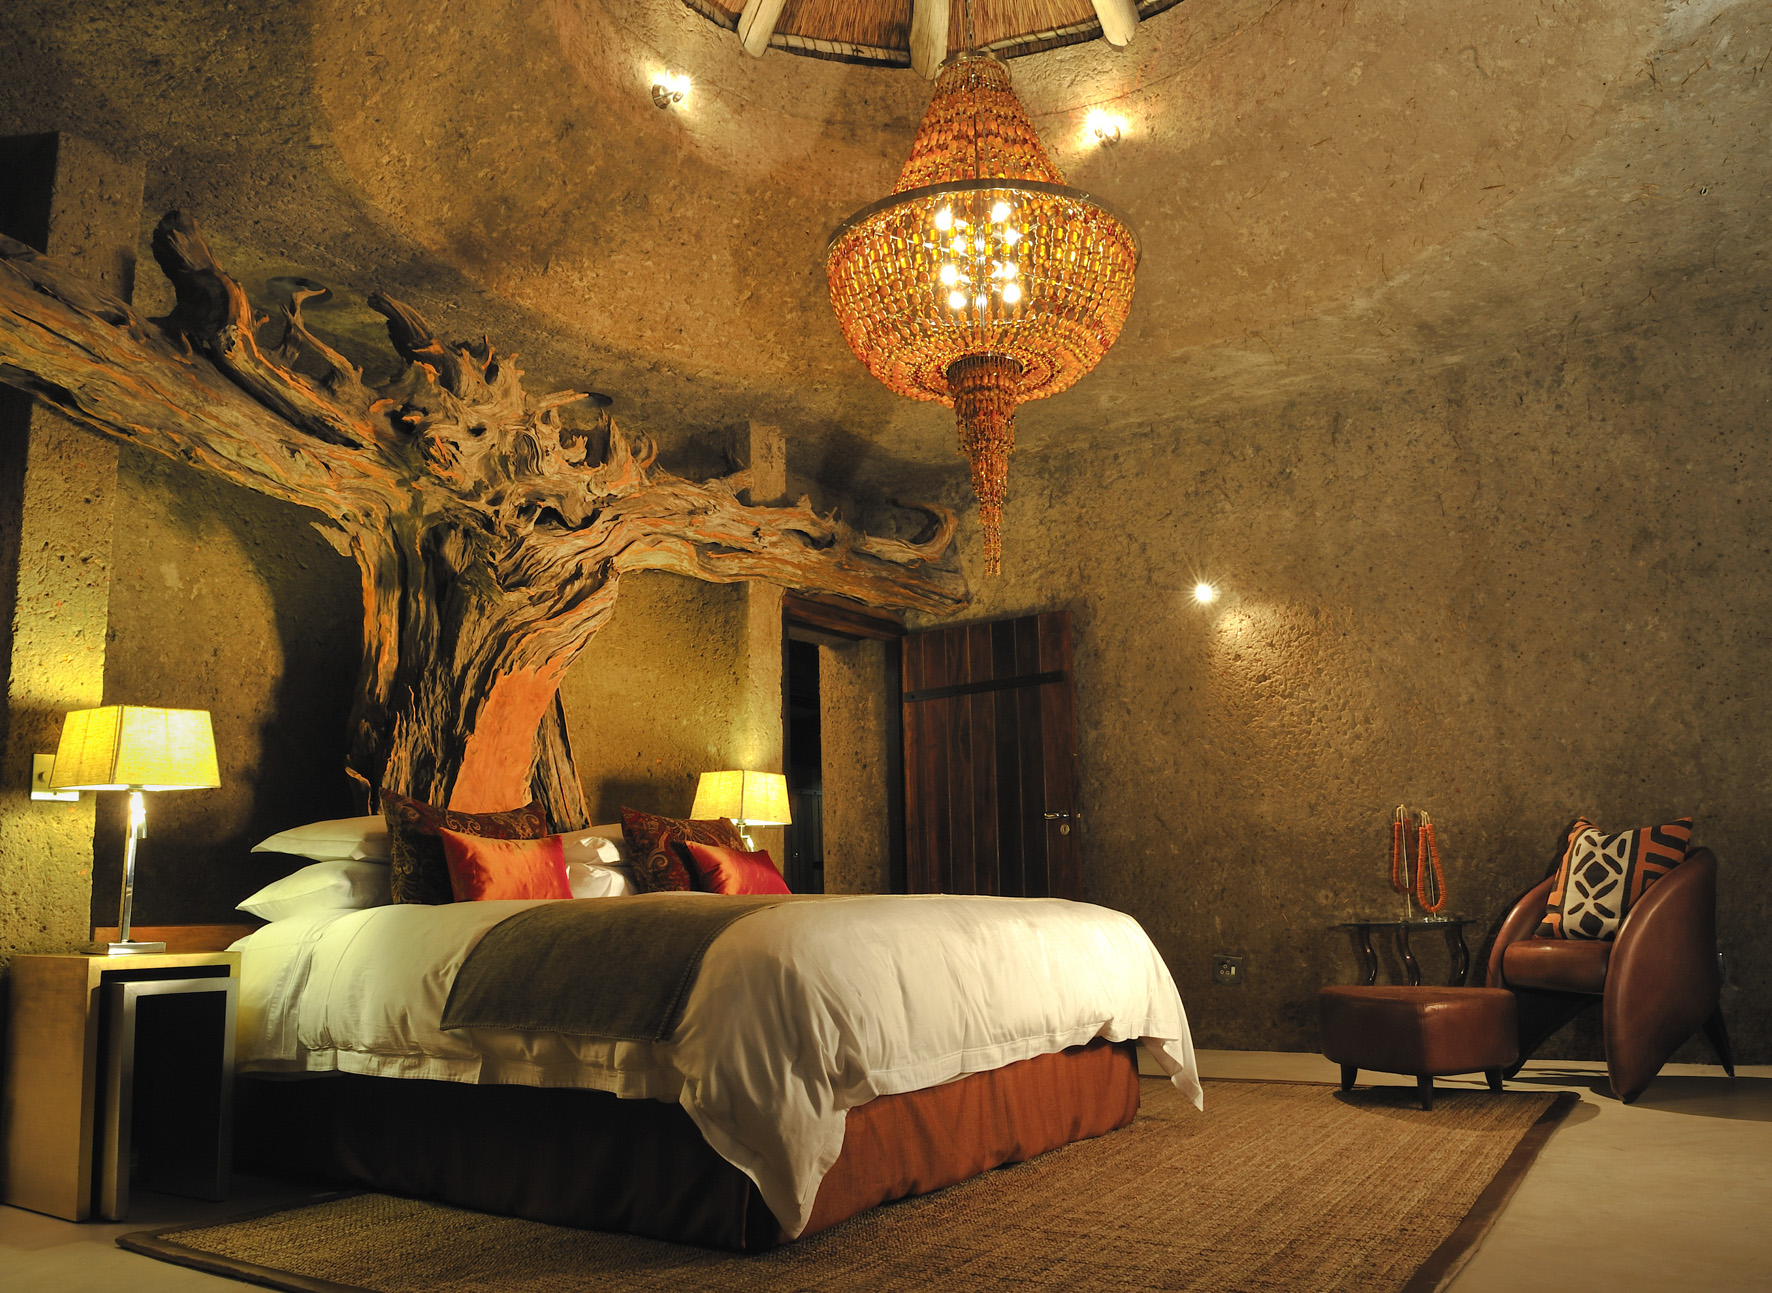 Amber Presidential Suite, Saba Saba Earth Lodge, South Africa